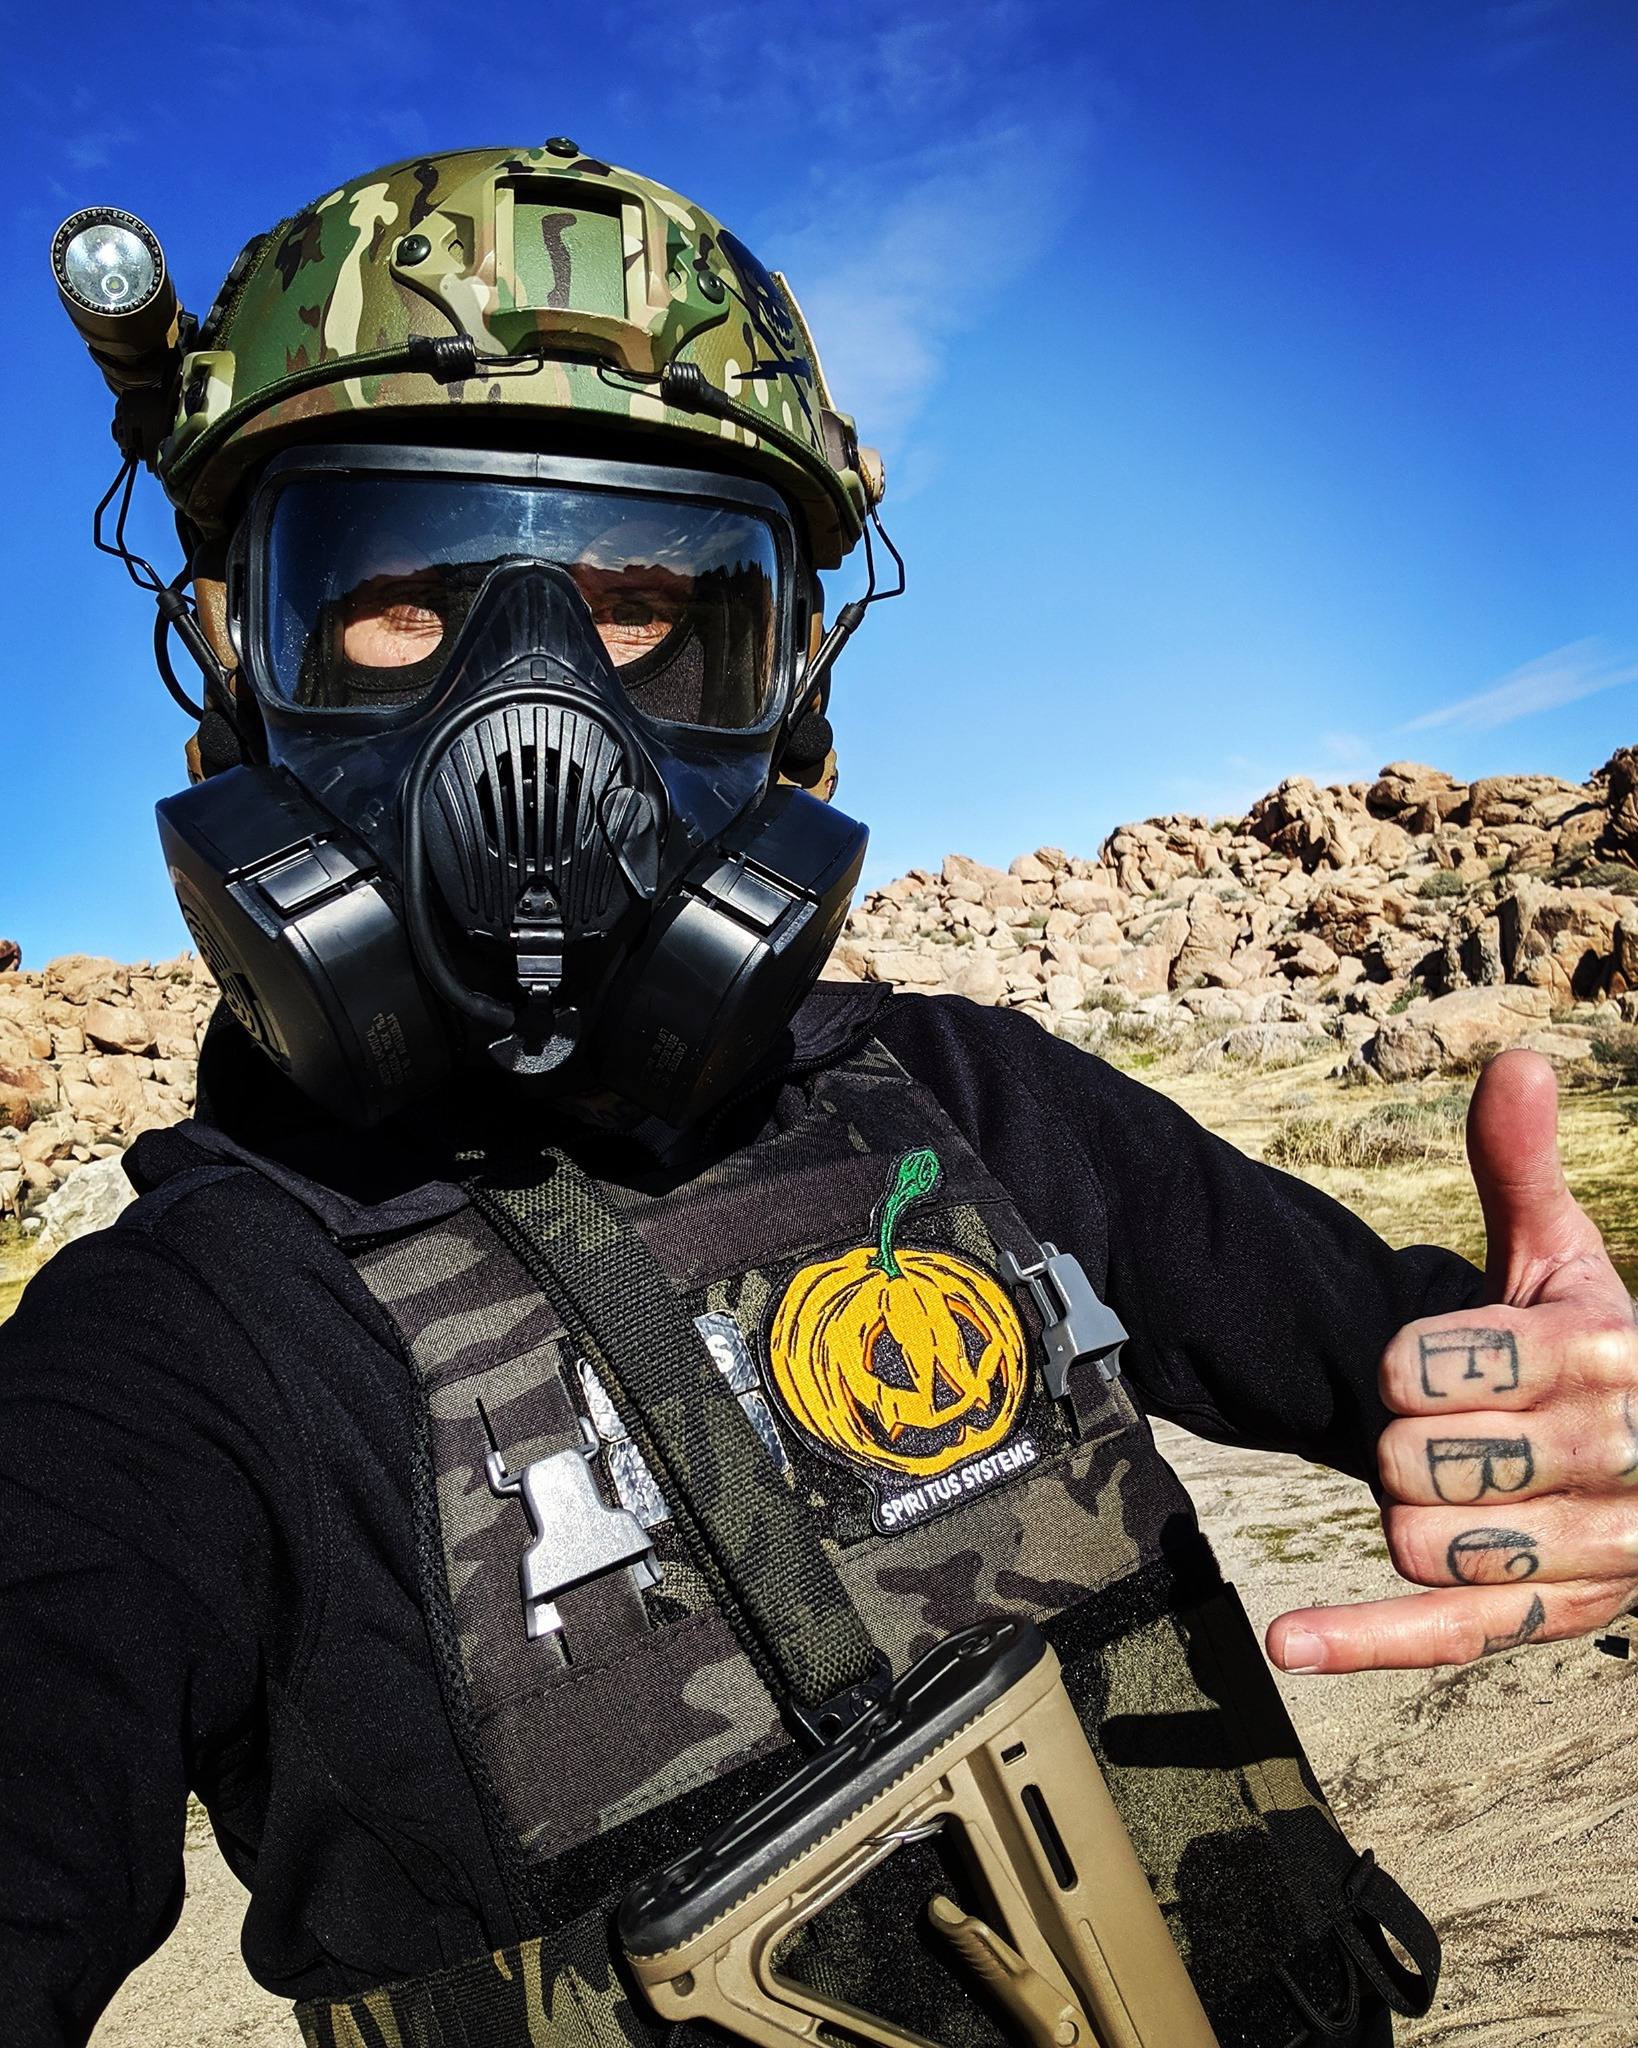 Zamudio poses in a gas mask and body armor giving a 'surf's up' hand gesture. There's tattoos on his fingers that spell out 'white boy.'